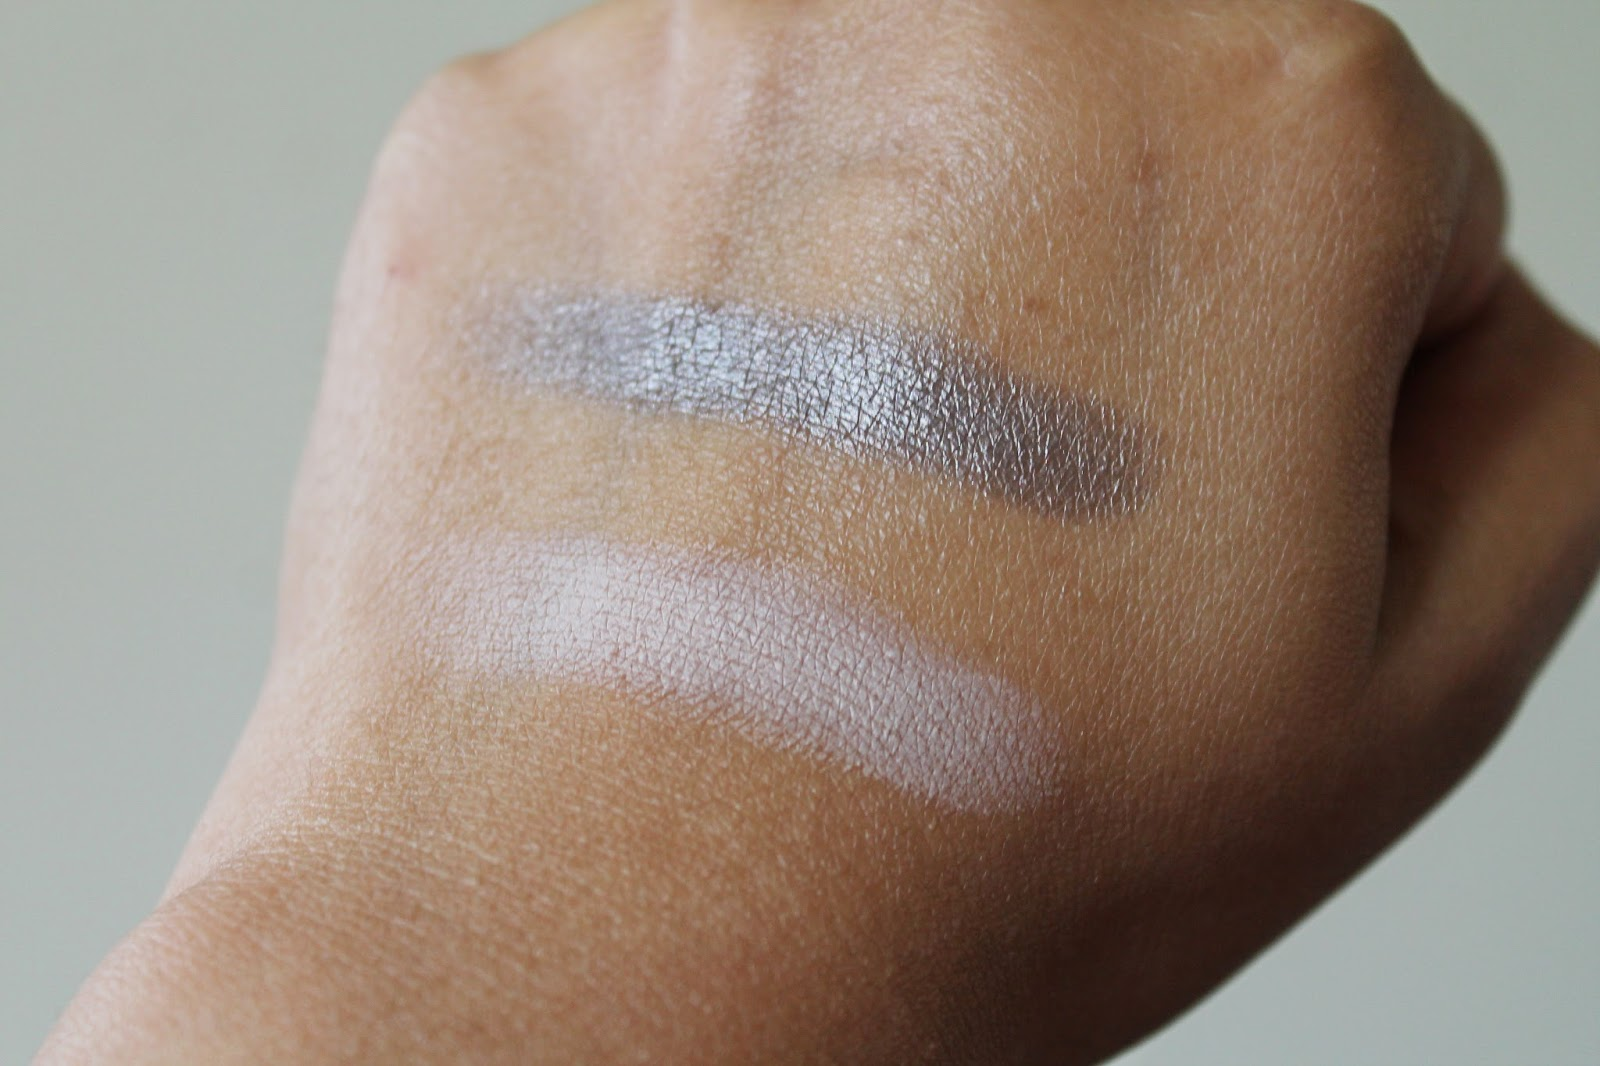 Clarins Ombre Matte Cream-to-Powder Eyeshadows in Nude Pink & Sparkle Grey Swatches - Aspiring Londoner